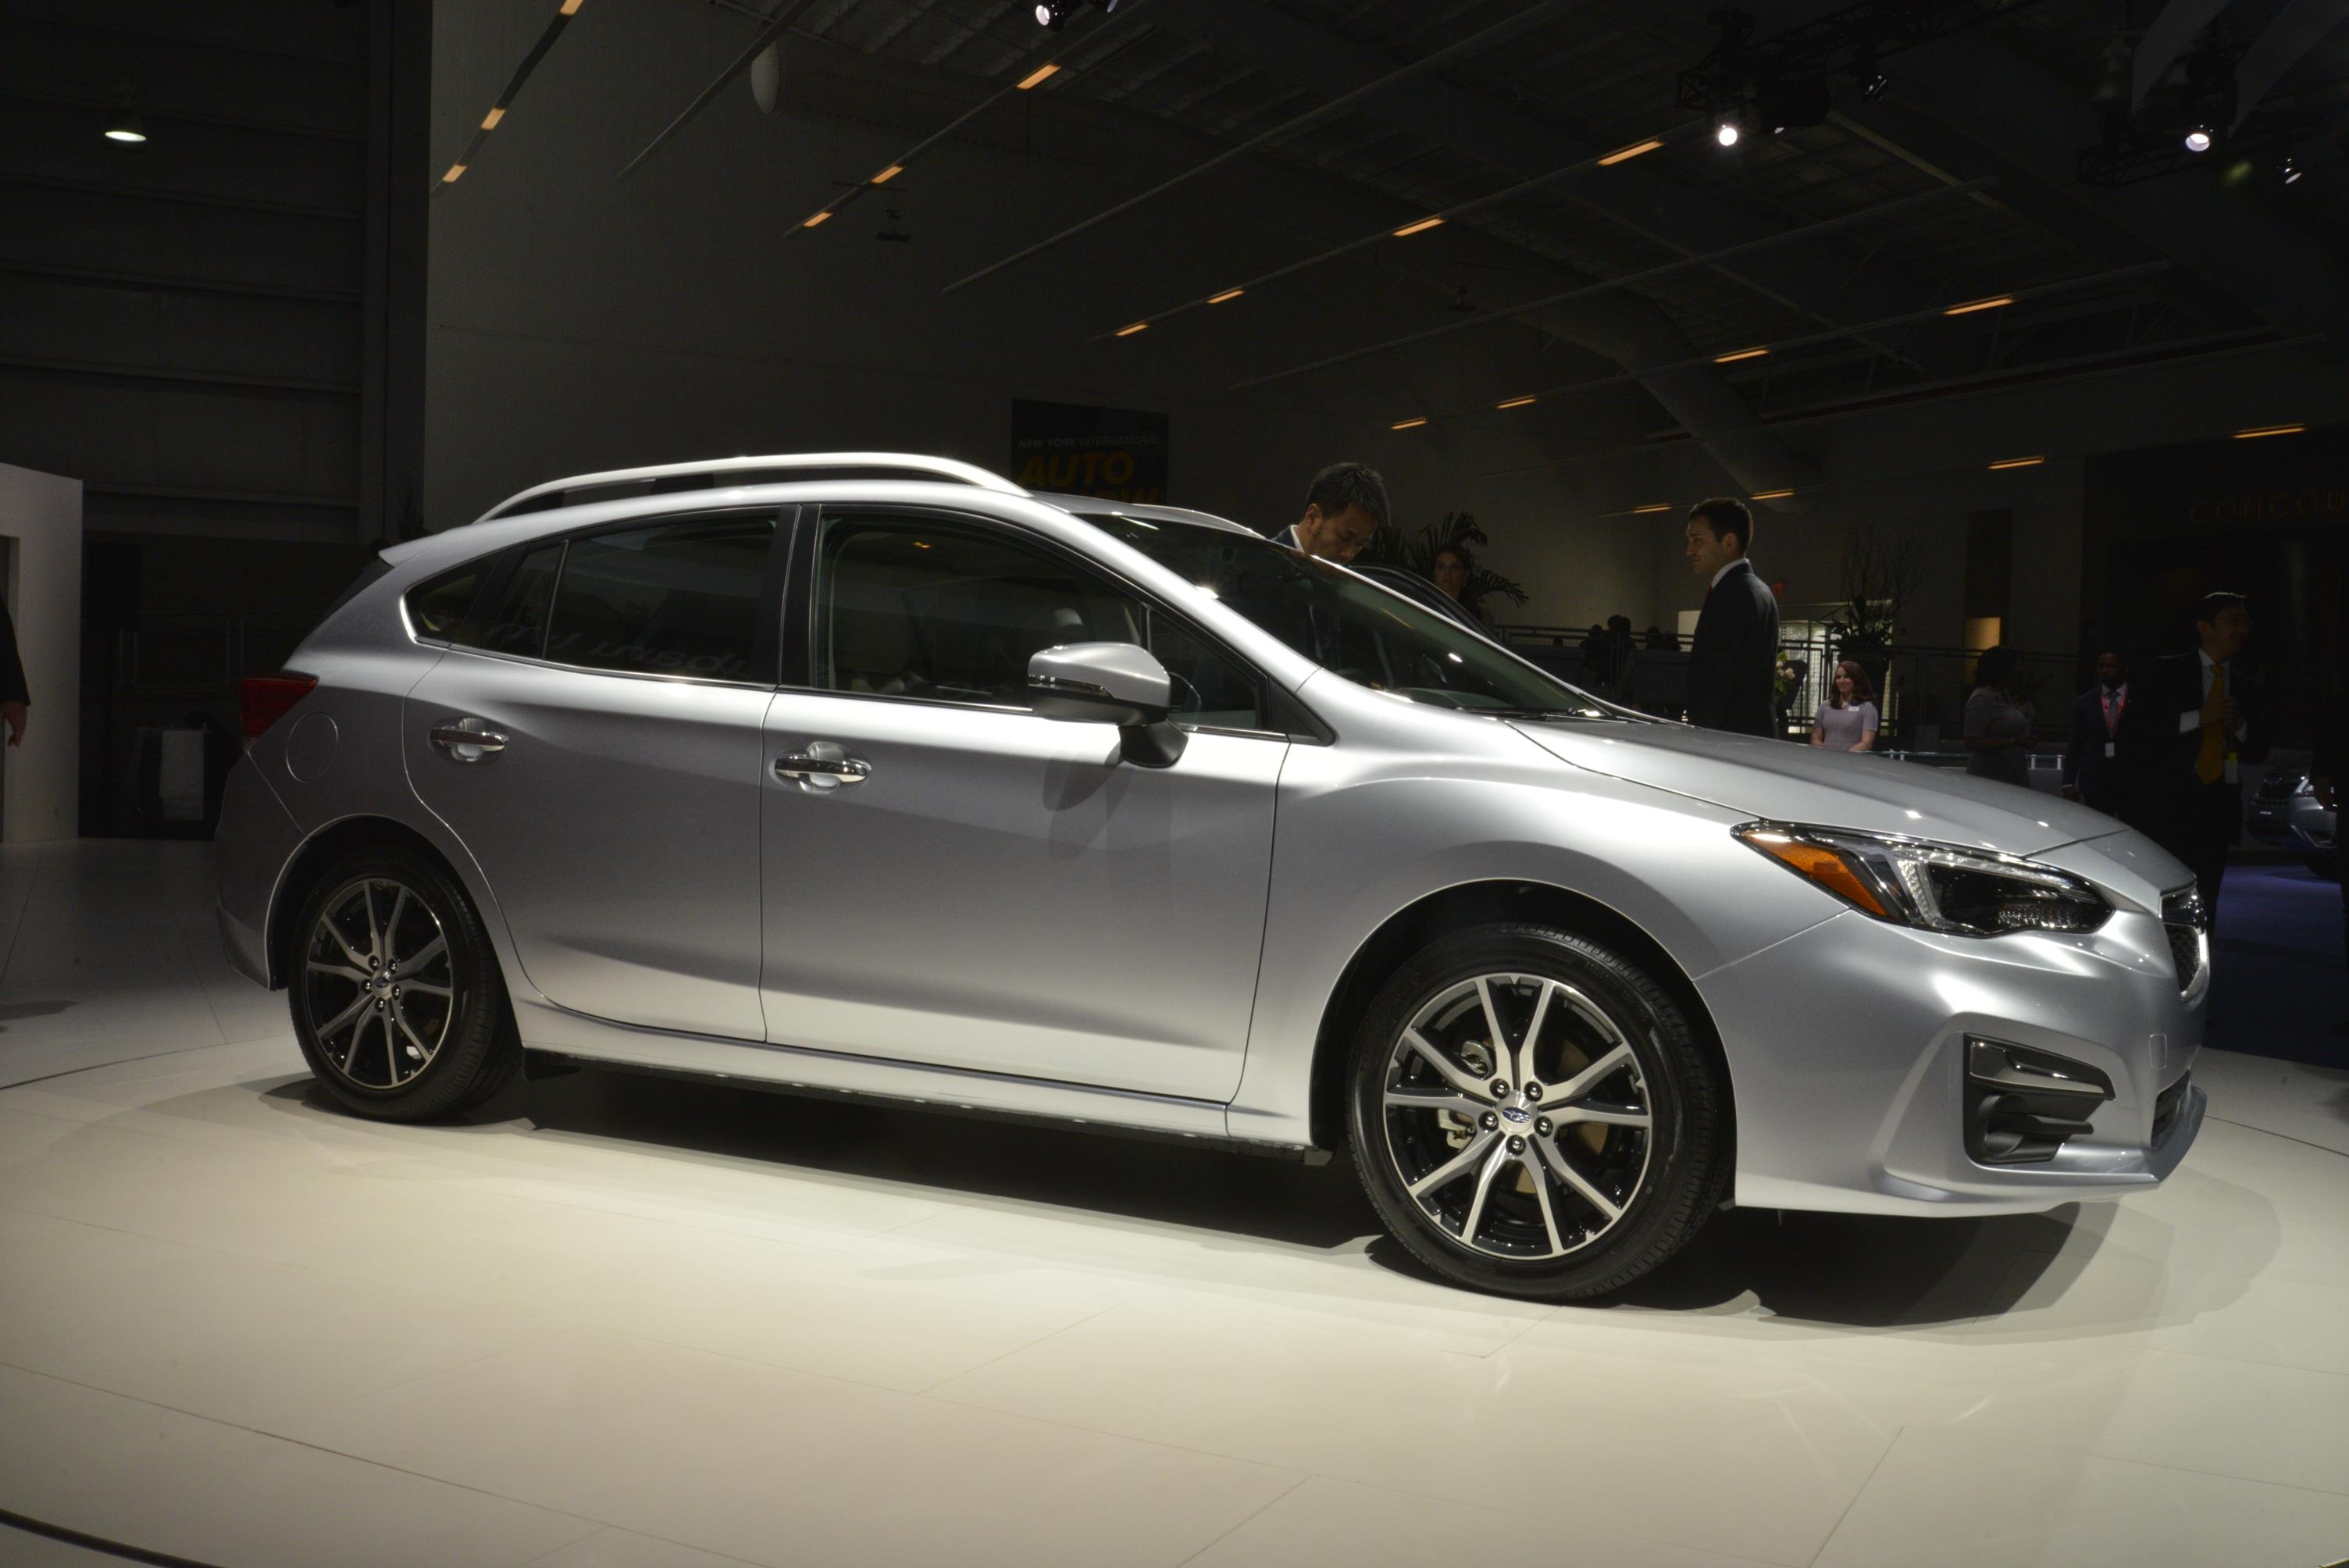 2017 subaru impreza hatchback concept 2017 2018 best cars reviews. Black Bedroom Furniture Sets. Home Design Ideas